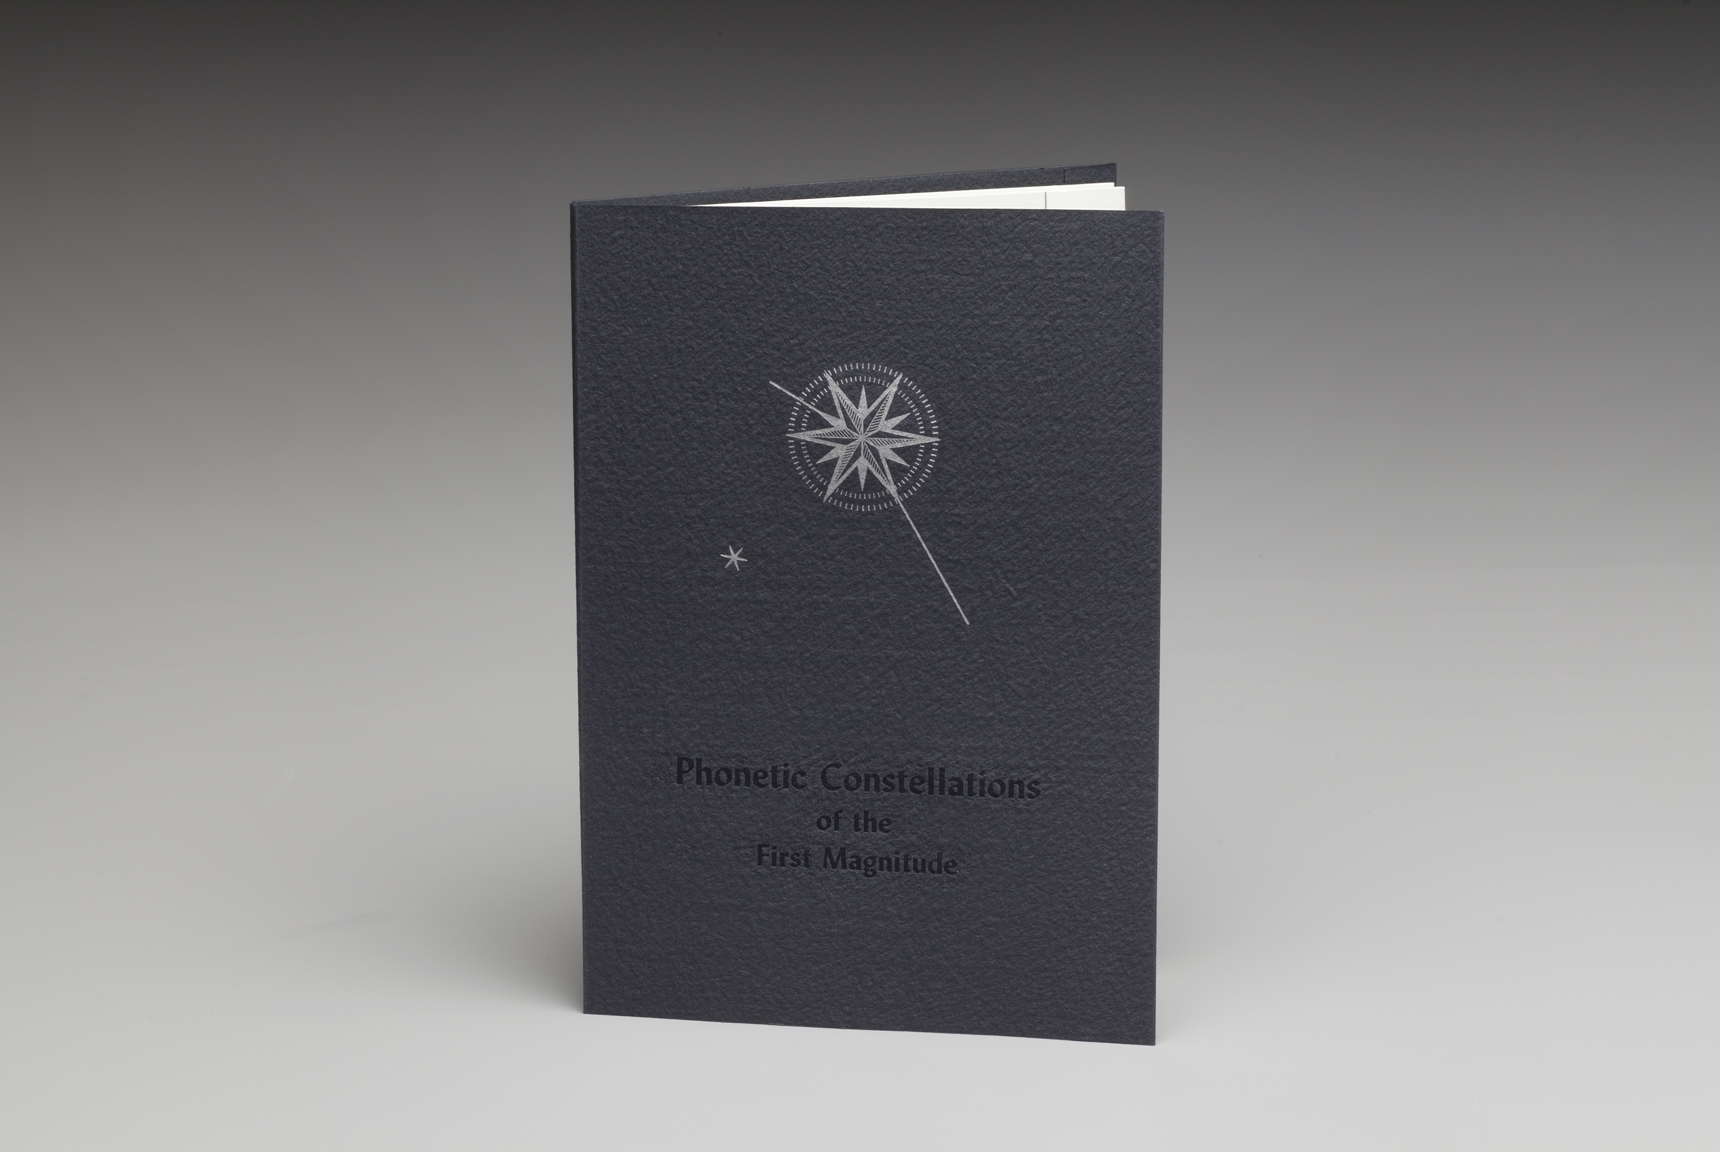 phonetic constellations of the first magnitude